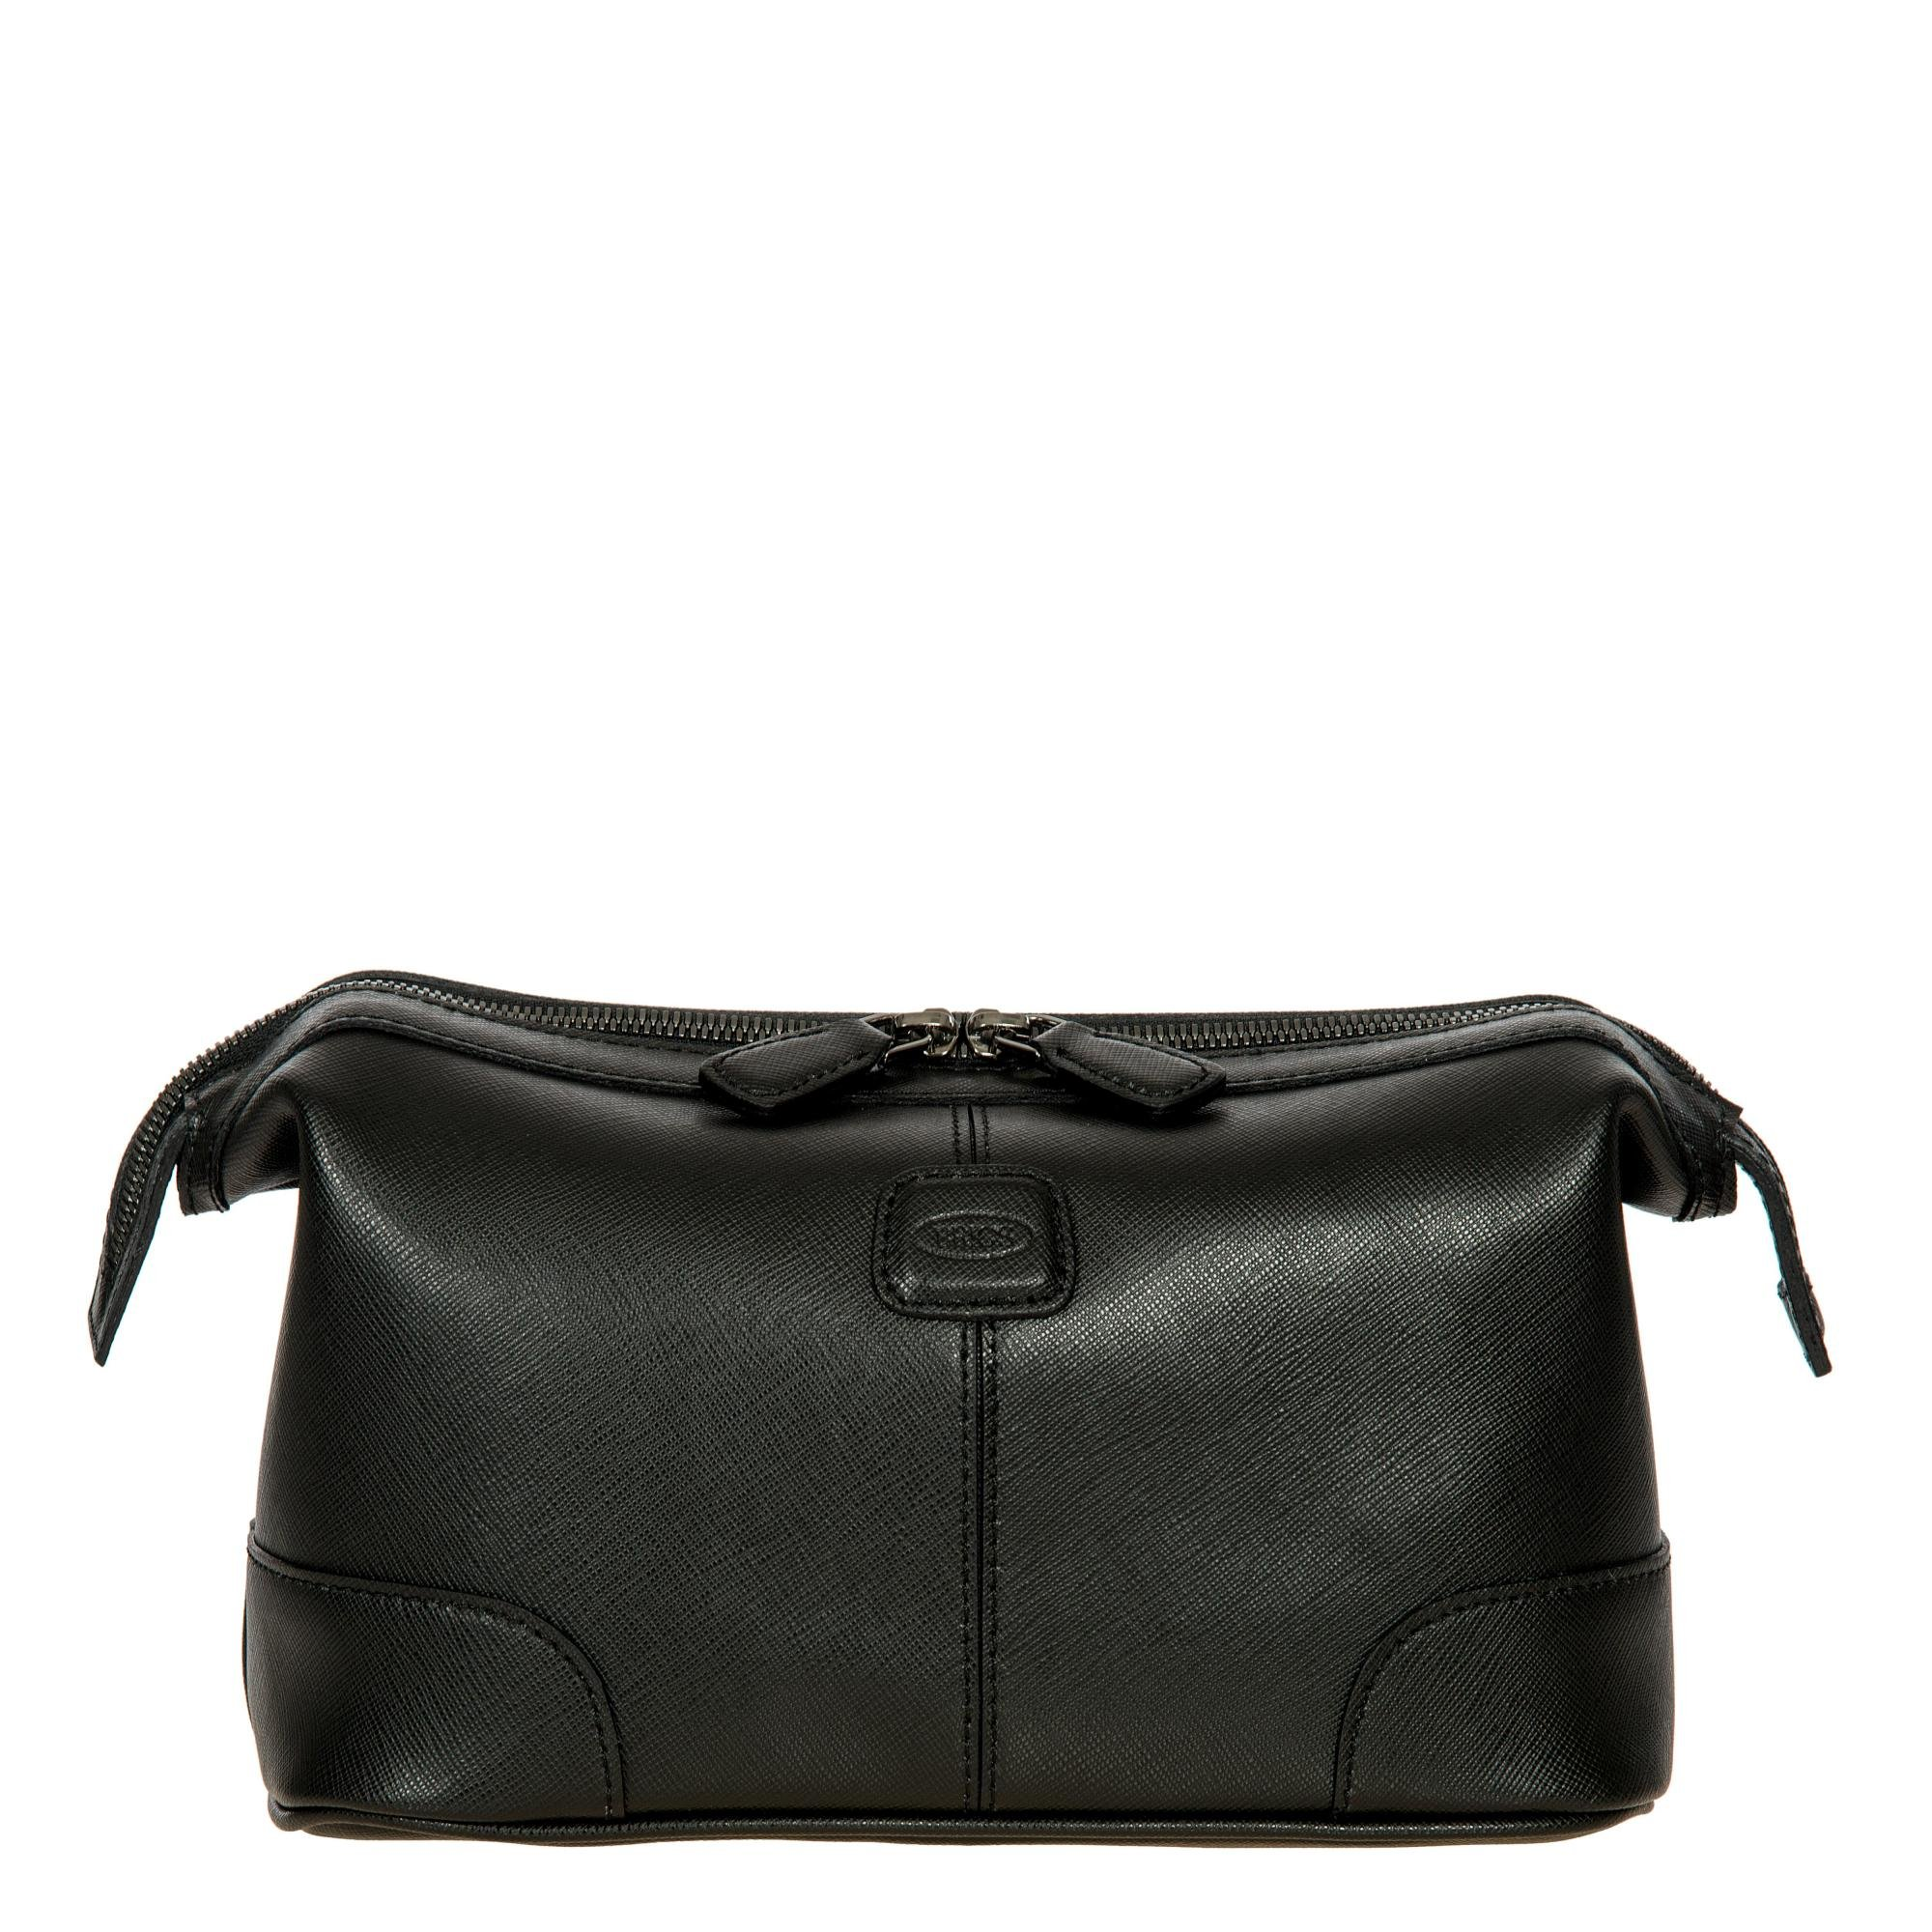 BRIC'S Varese Grooming Case (Black) by Bric's